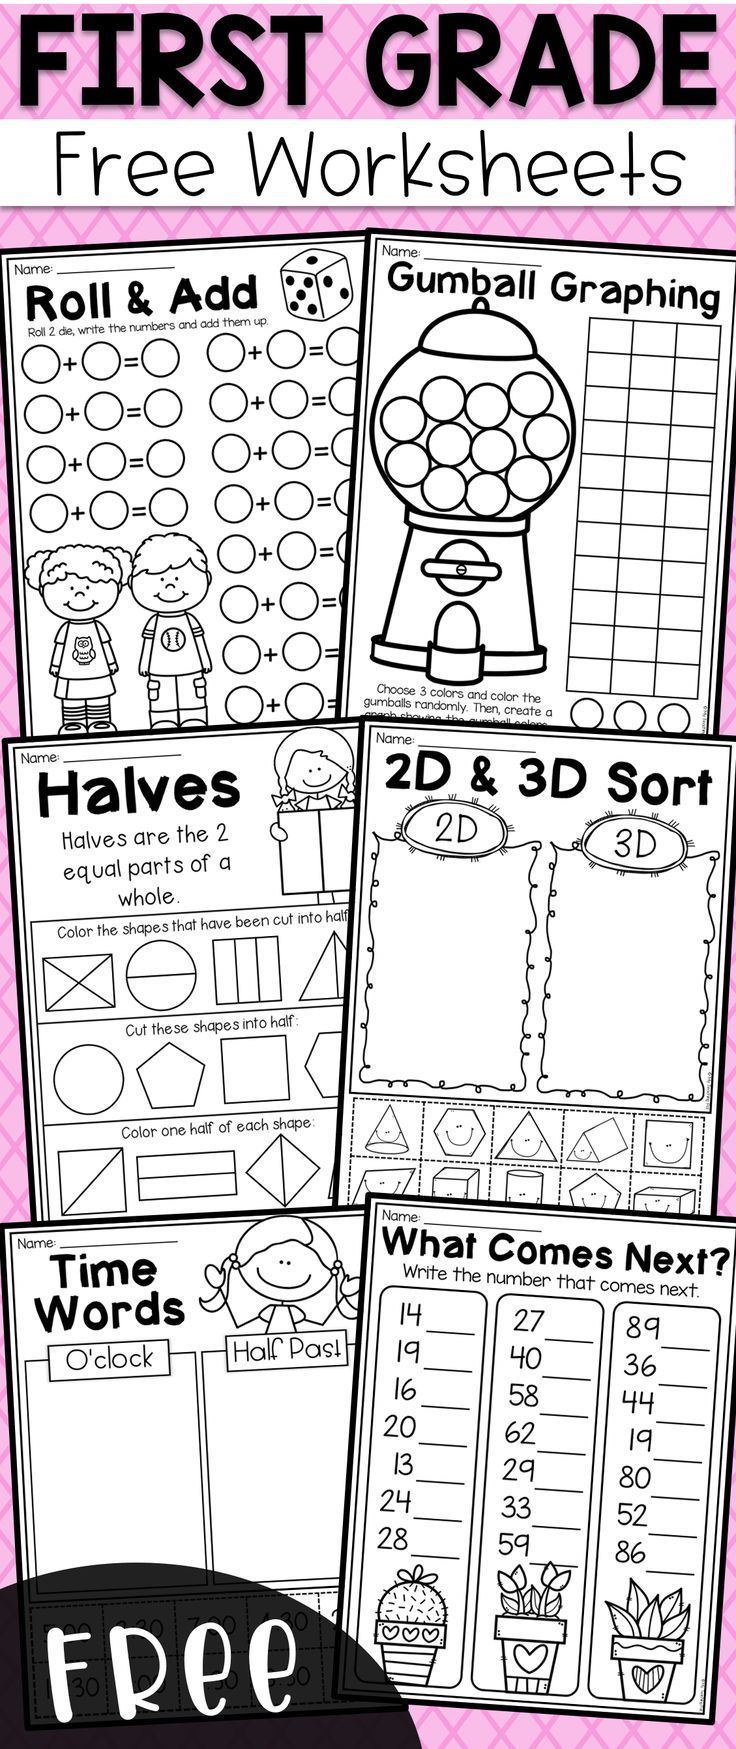 Free First Grade Math Worksheets It Provides Students With Practice In Addition Place Val In 2020 First Grade Math Worksheets First Grade Worksheets First Grade Math [ 1749 x 736 Pixel ]